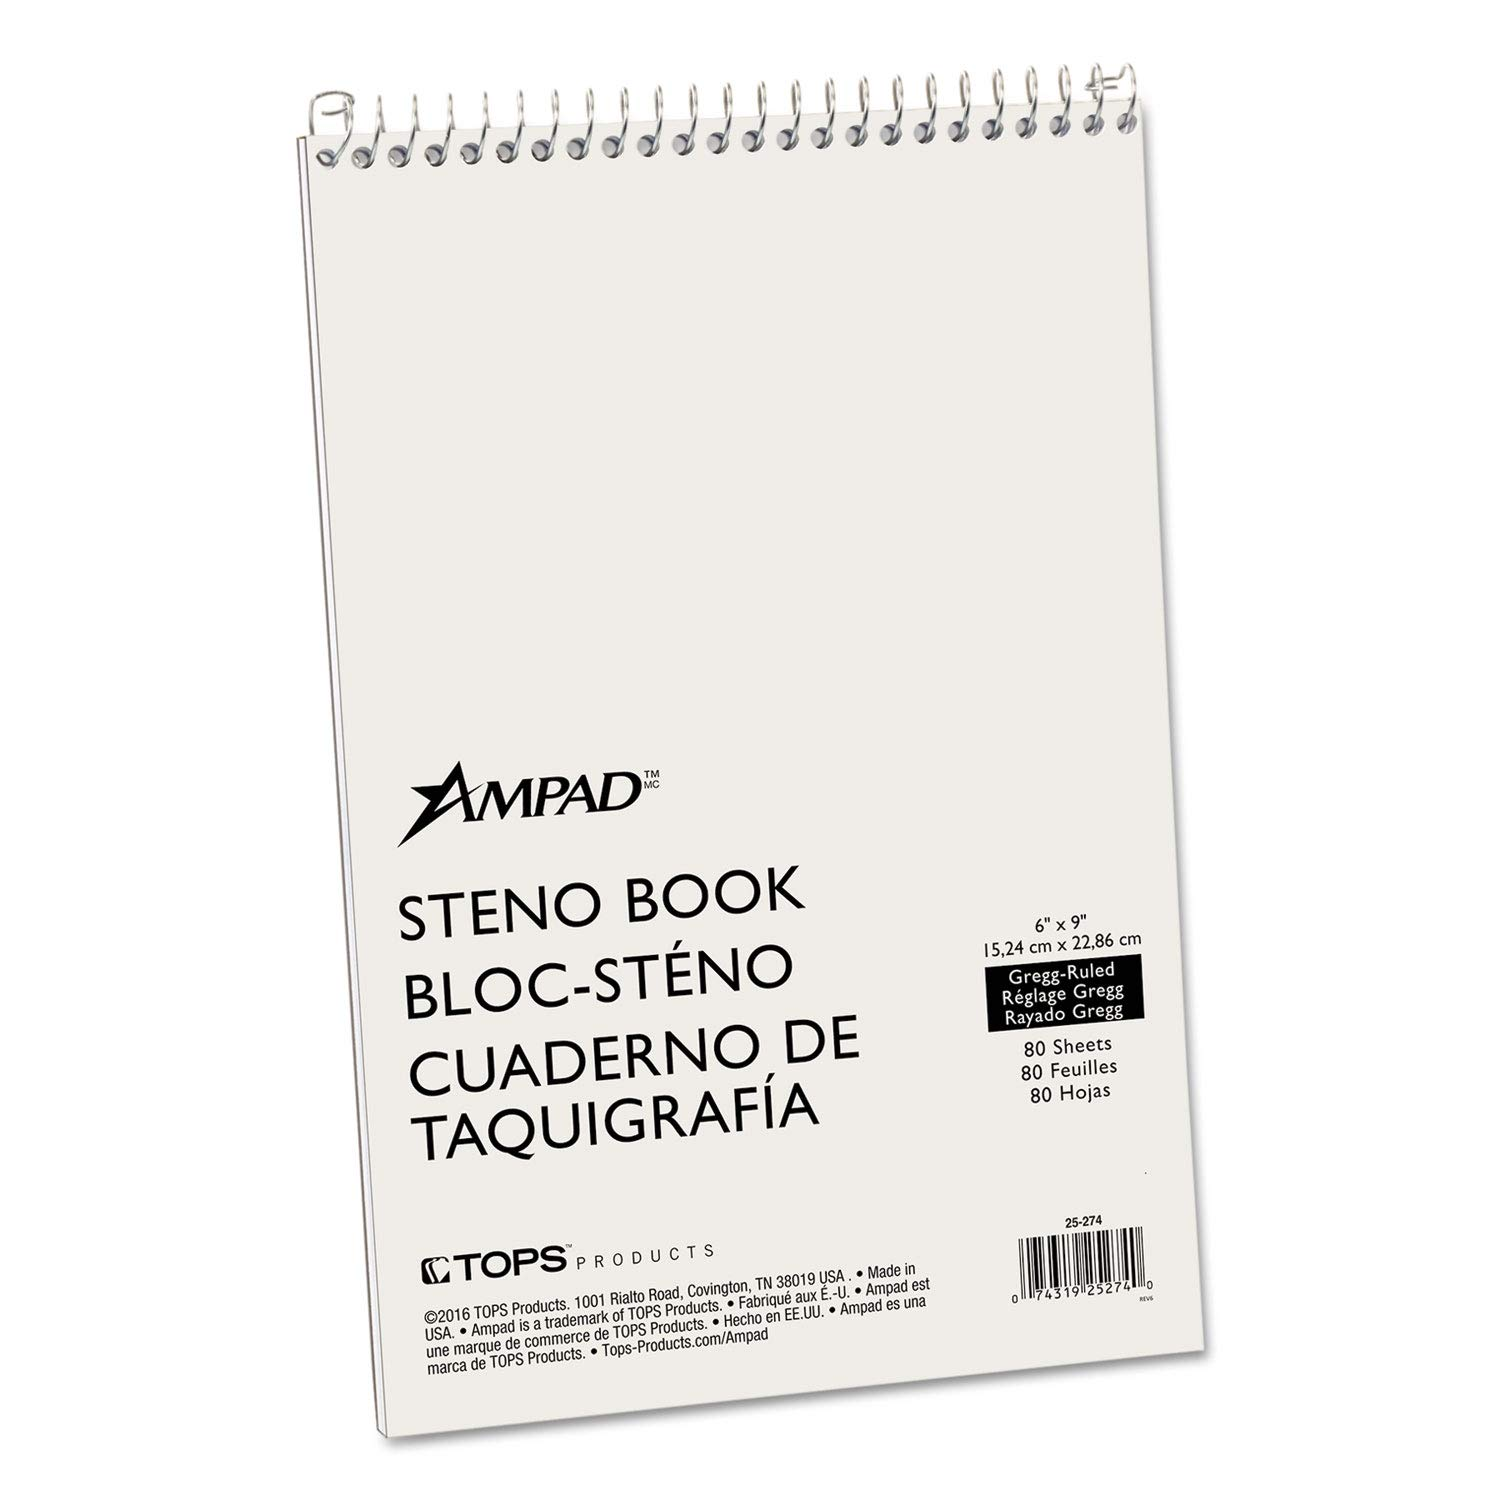 Ampad Spiral Steno Book, Gregg, 6 x 9, 15 lb, Green Tint, 80 Sheets - 25-274 (Pack of 10)